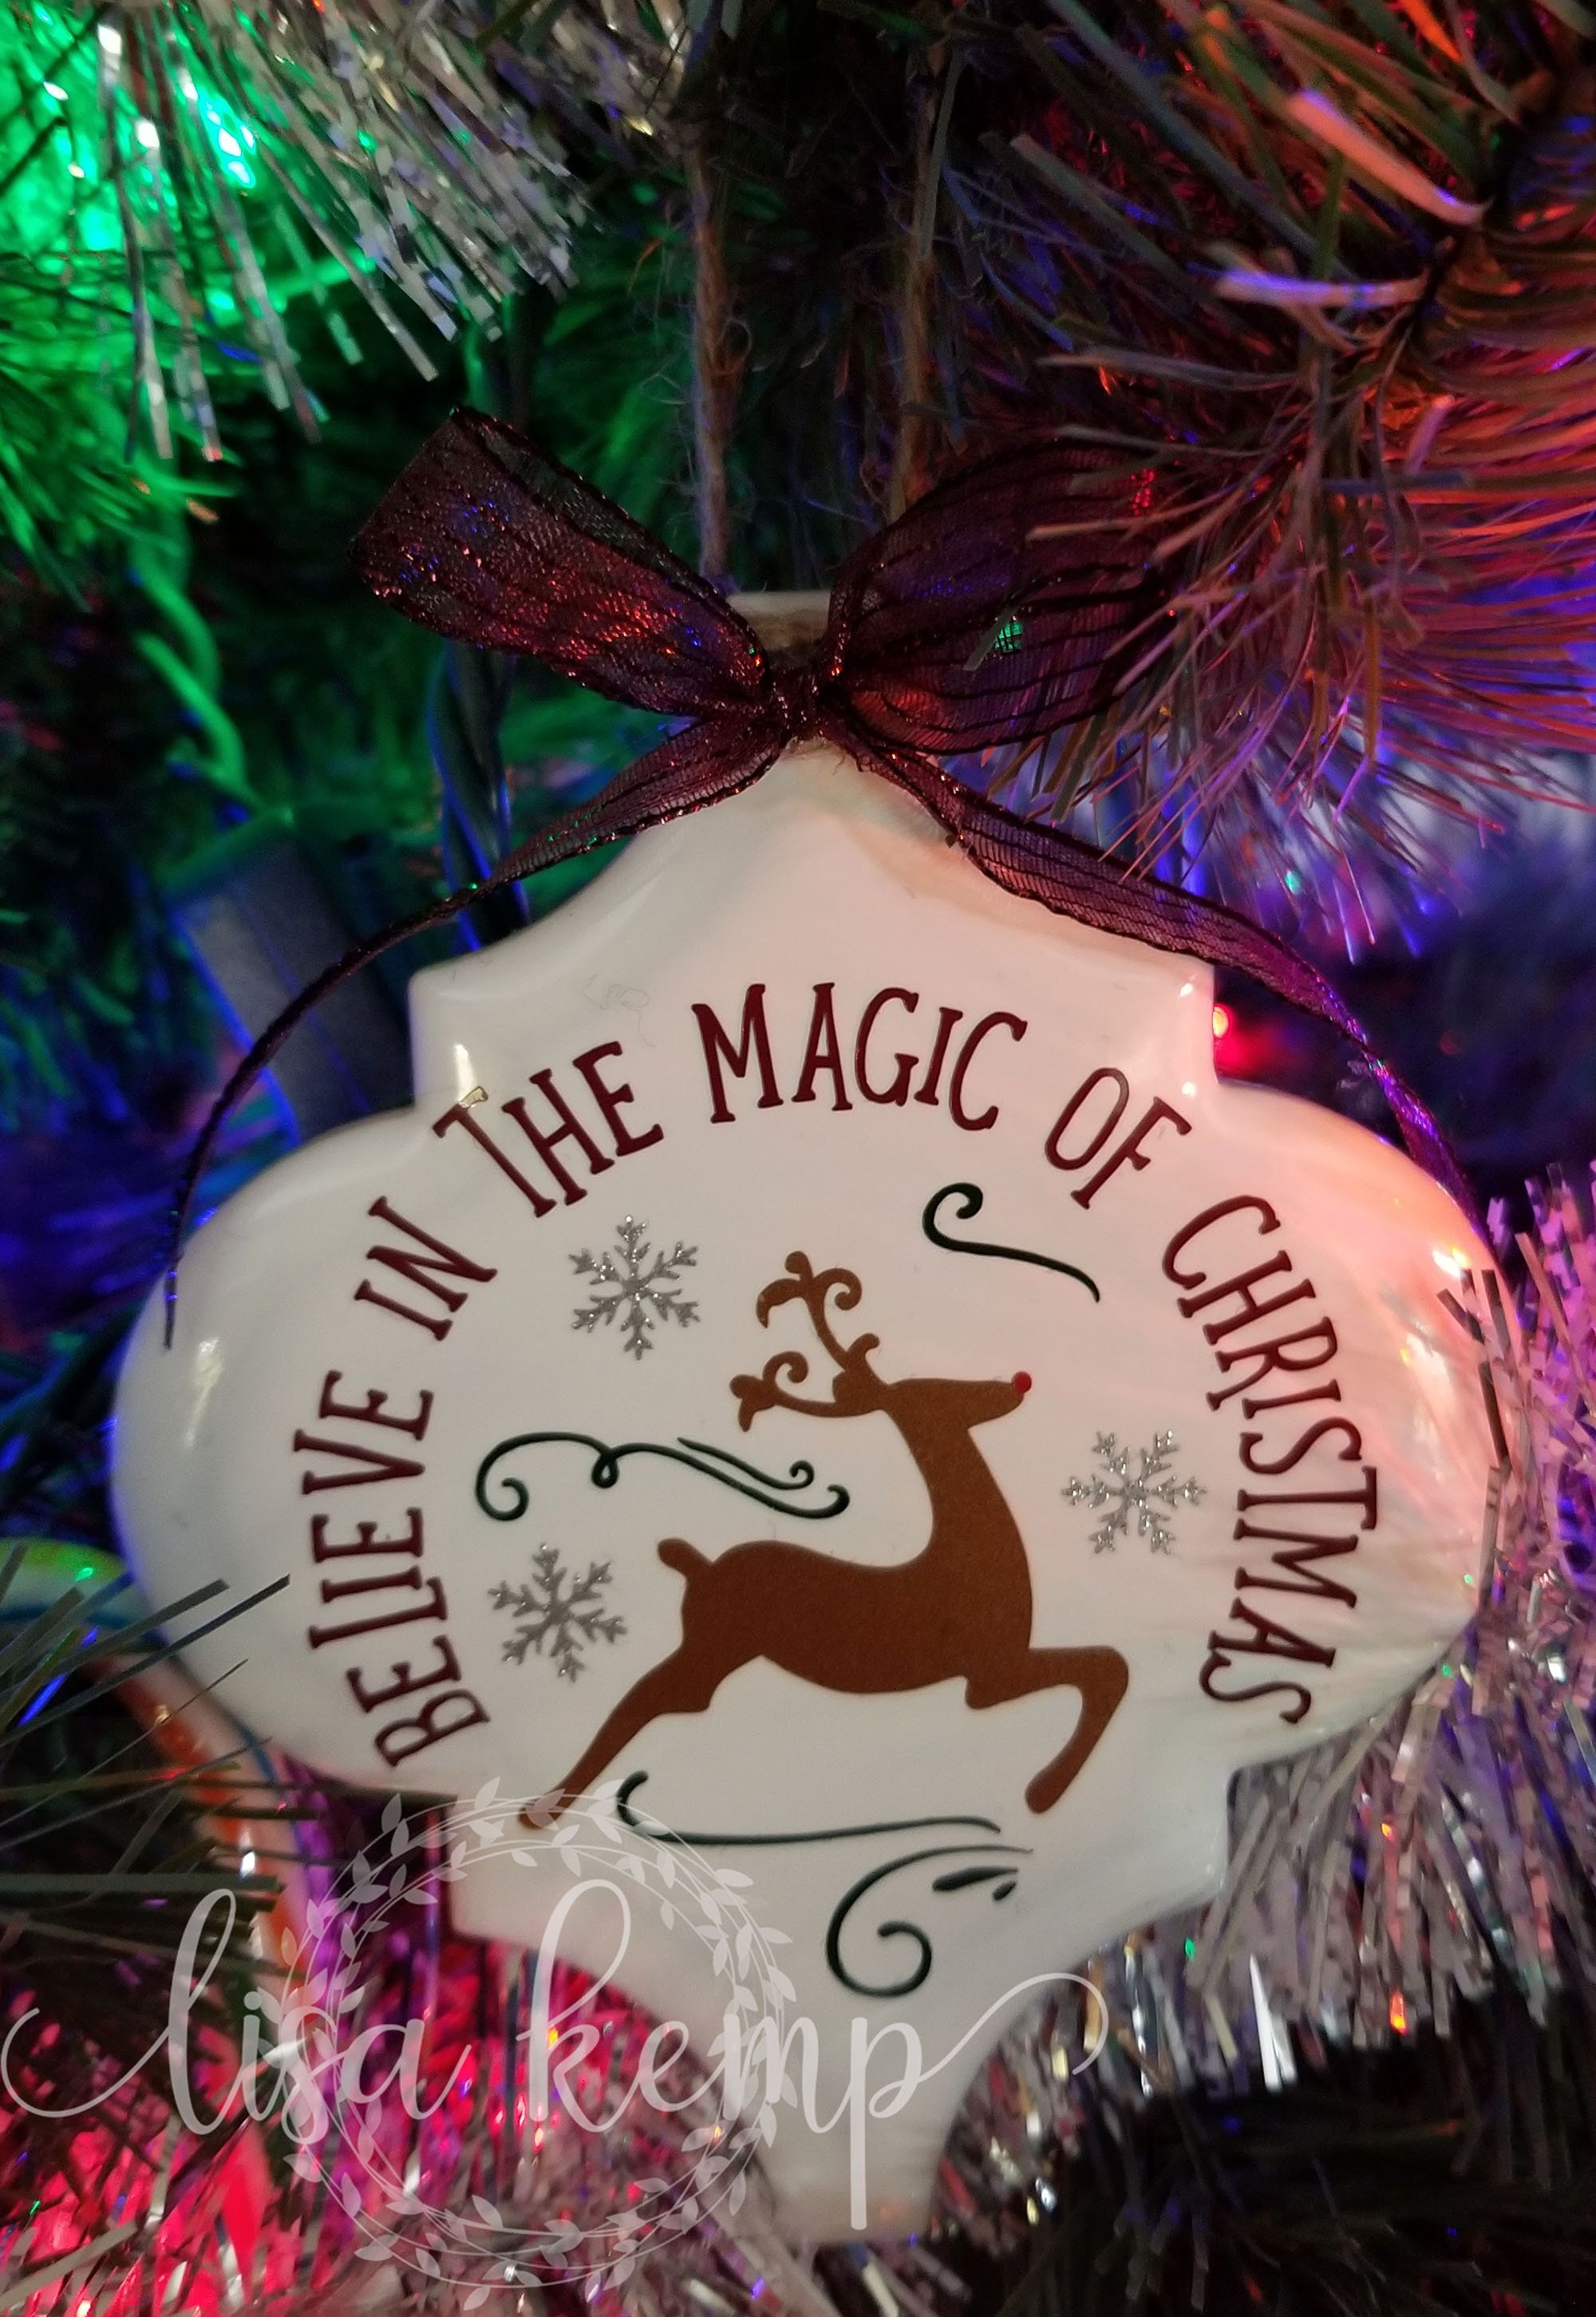 Believe In The Magic Of Christmas Ceramic Lantern Tile Etsy In 2021 Christmas Ornament Crafts Christmas Ornaments Homemade Diy Christmas Ornaments